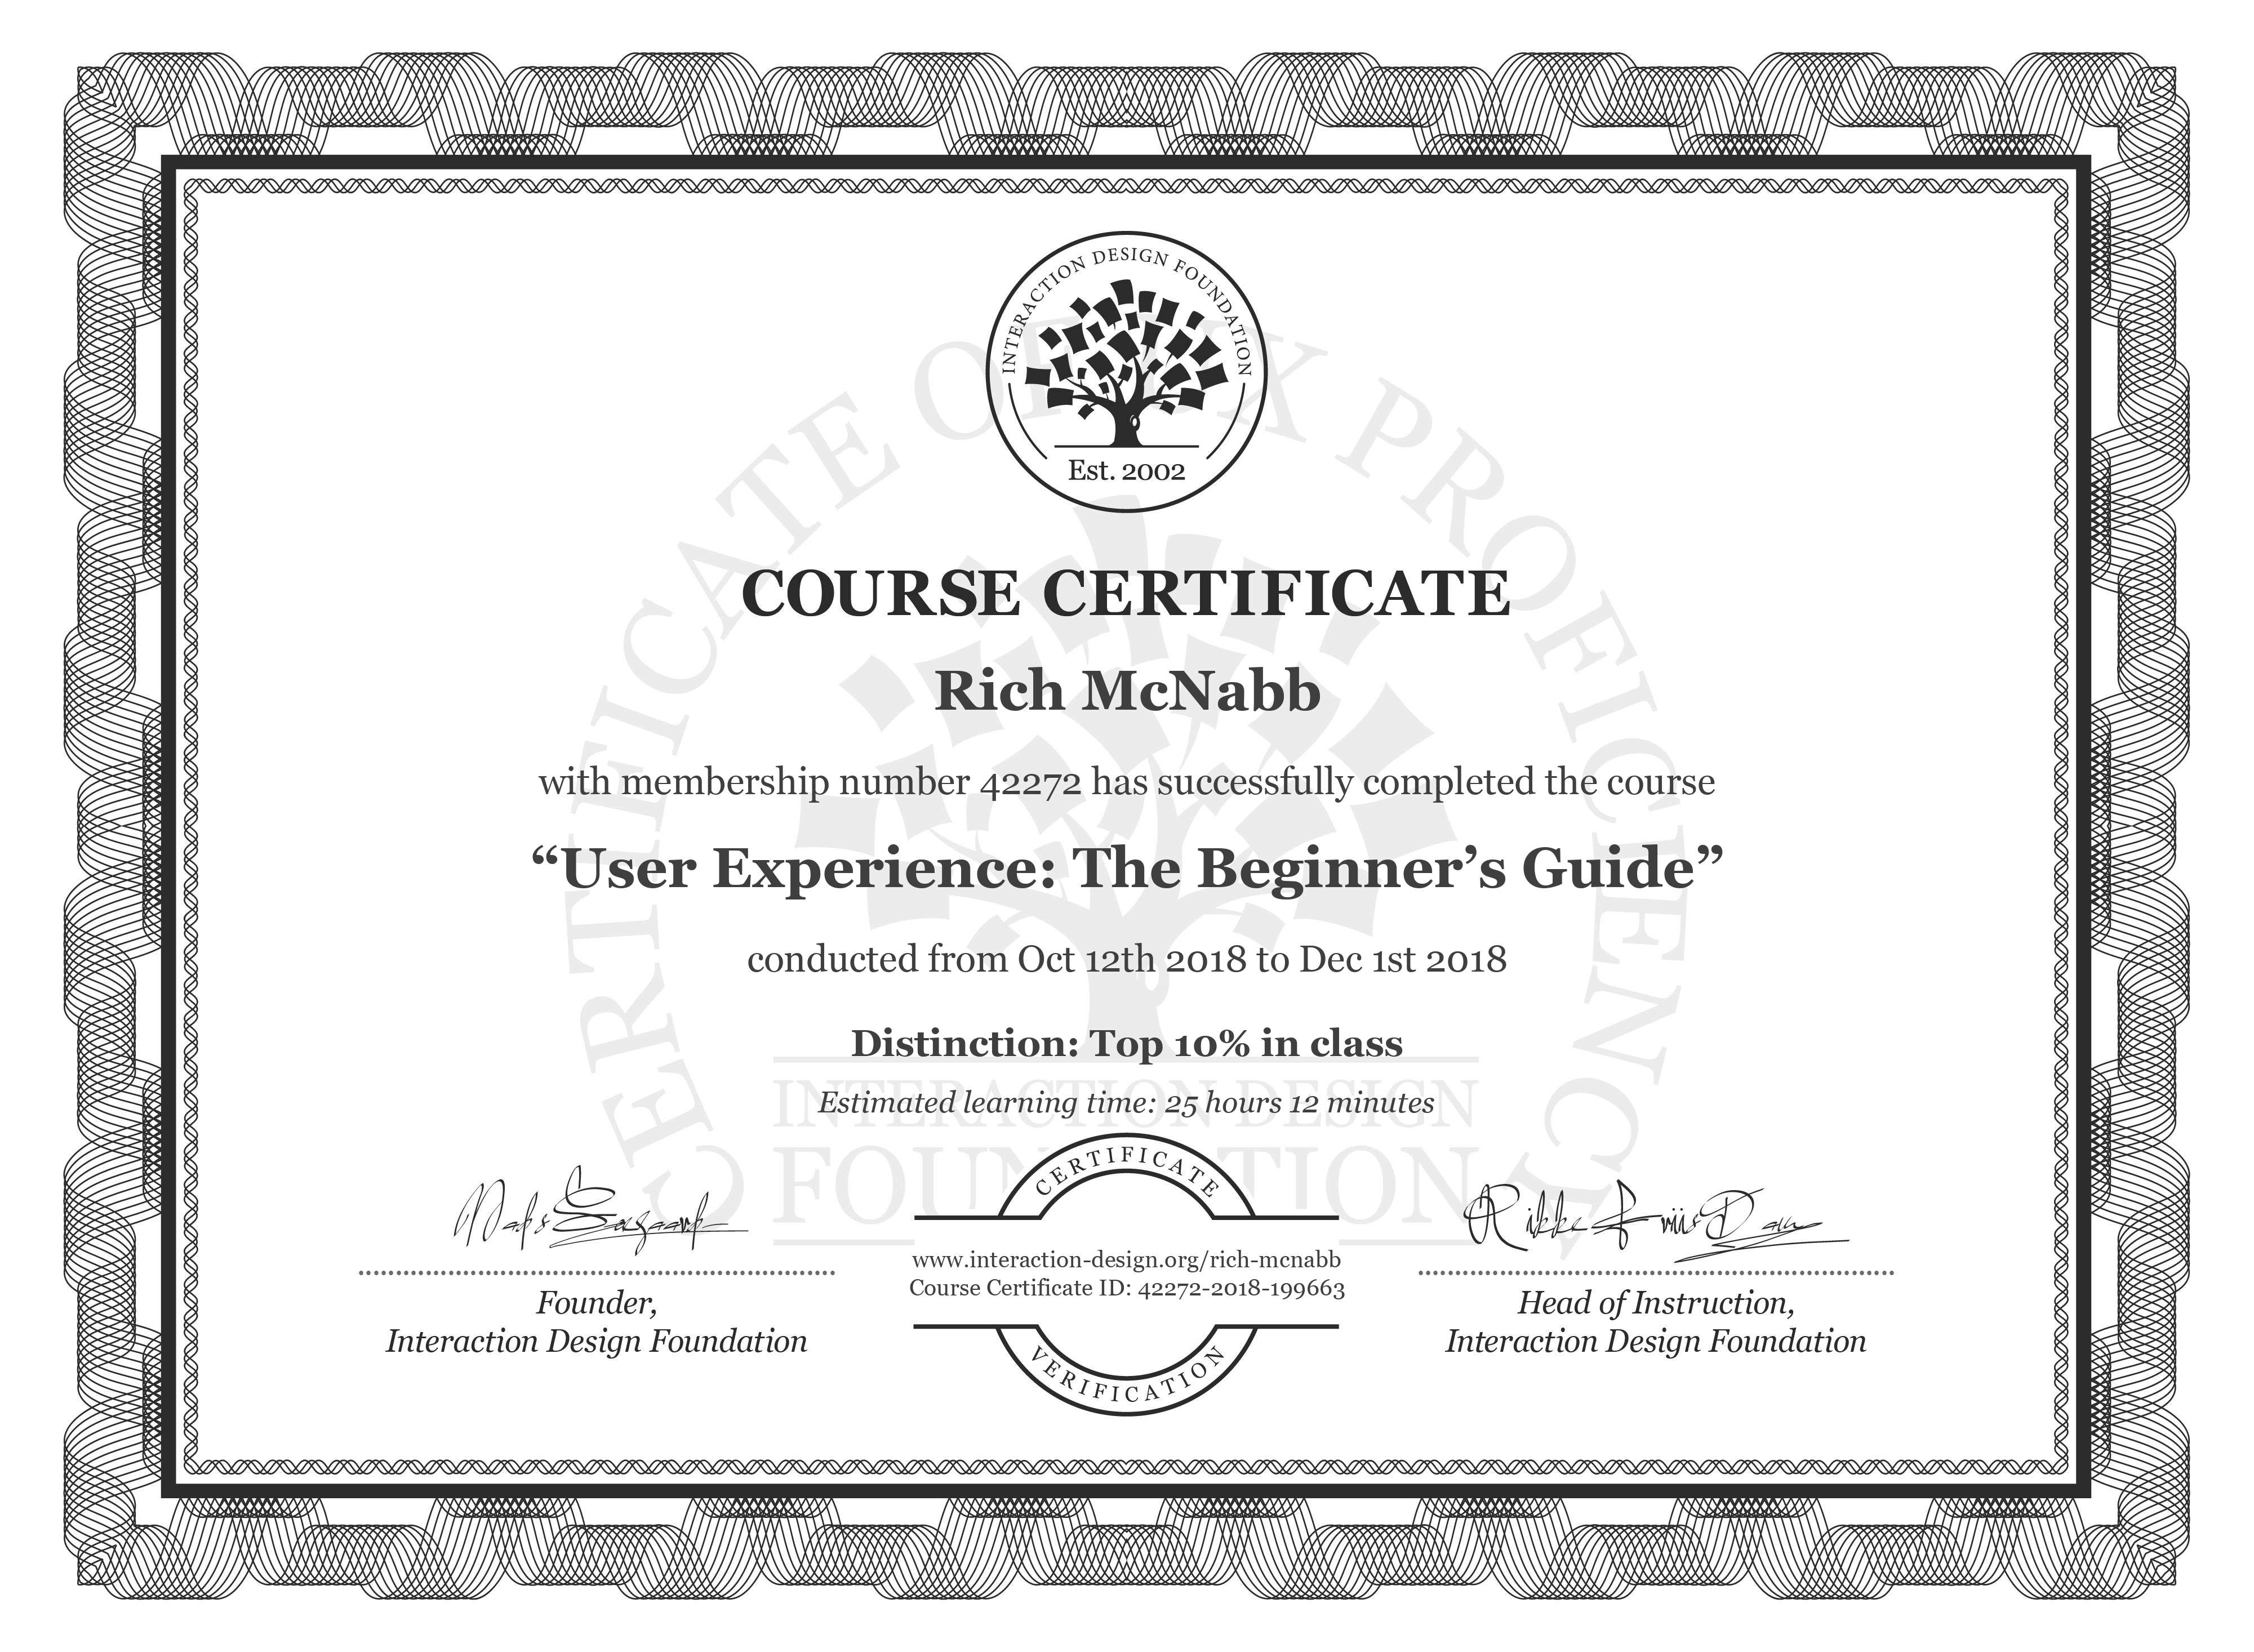 Rich McNabb's Course Certificate: Become a UX Designer from Scratch